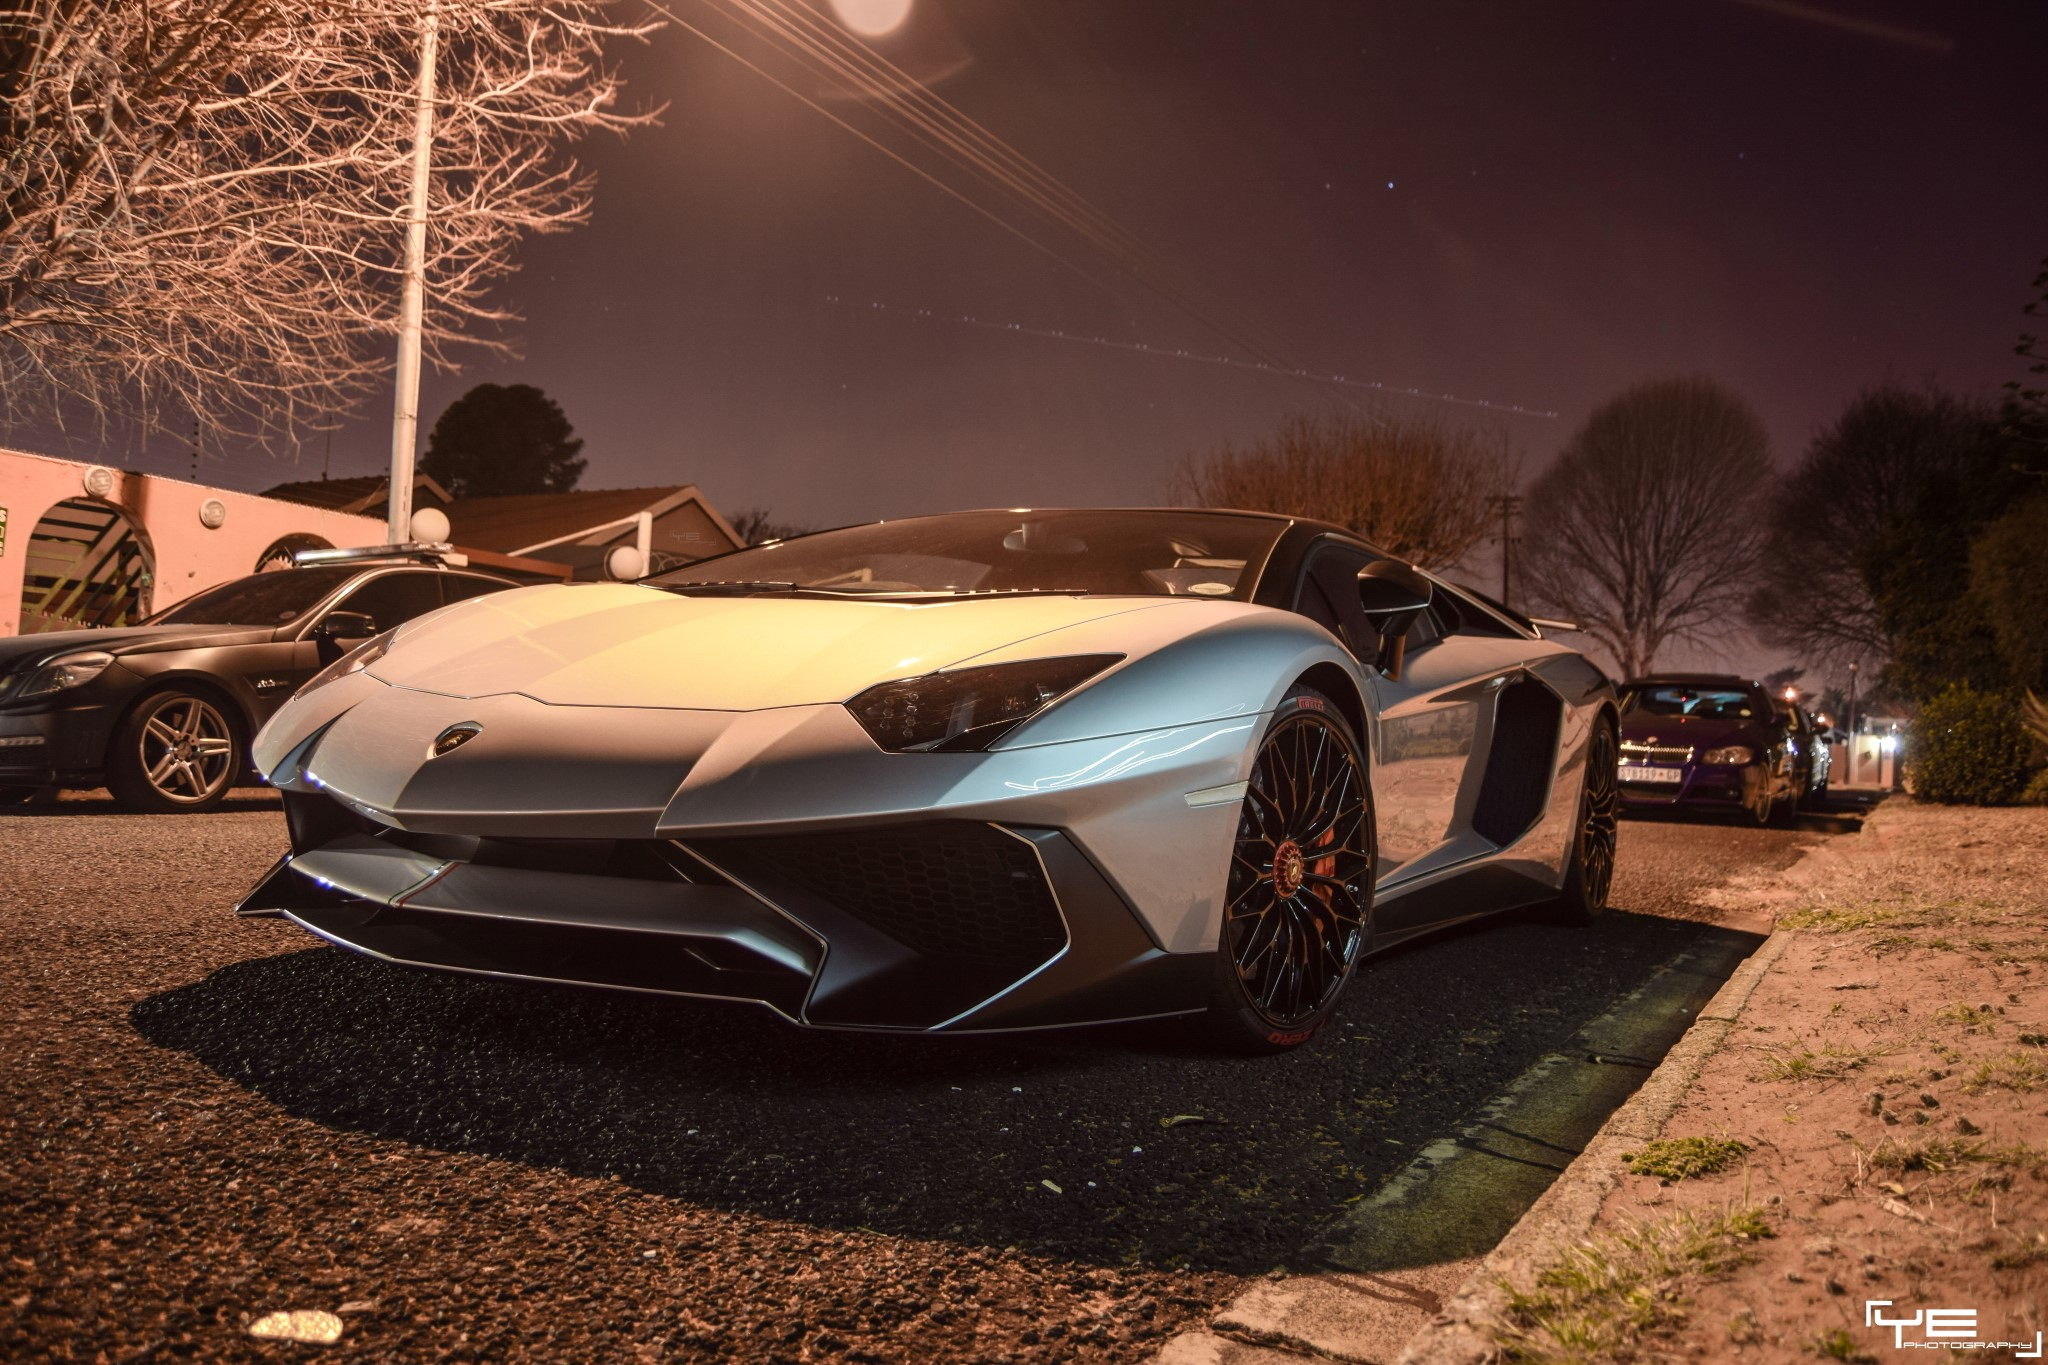 Lamborghini Aventador Sv Roadster 11 Of 12 Custom